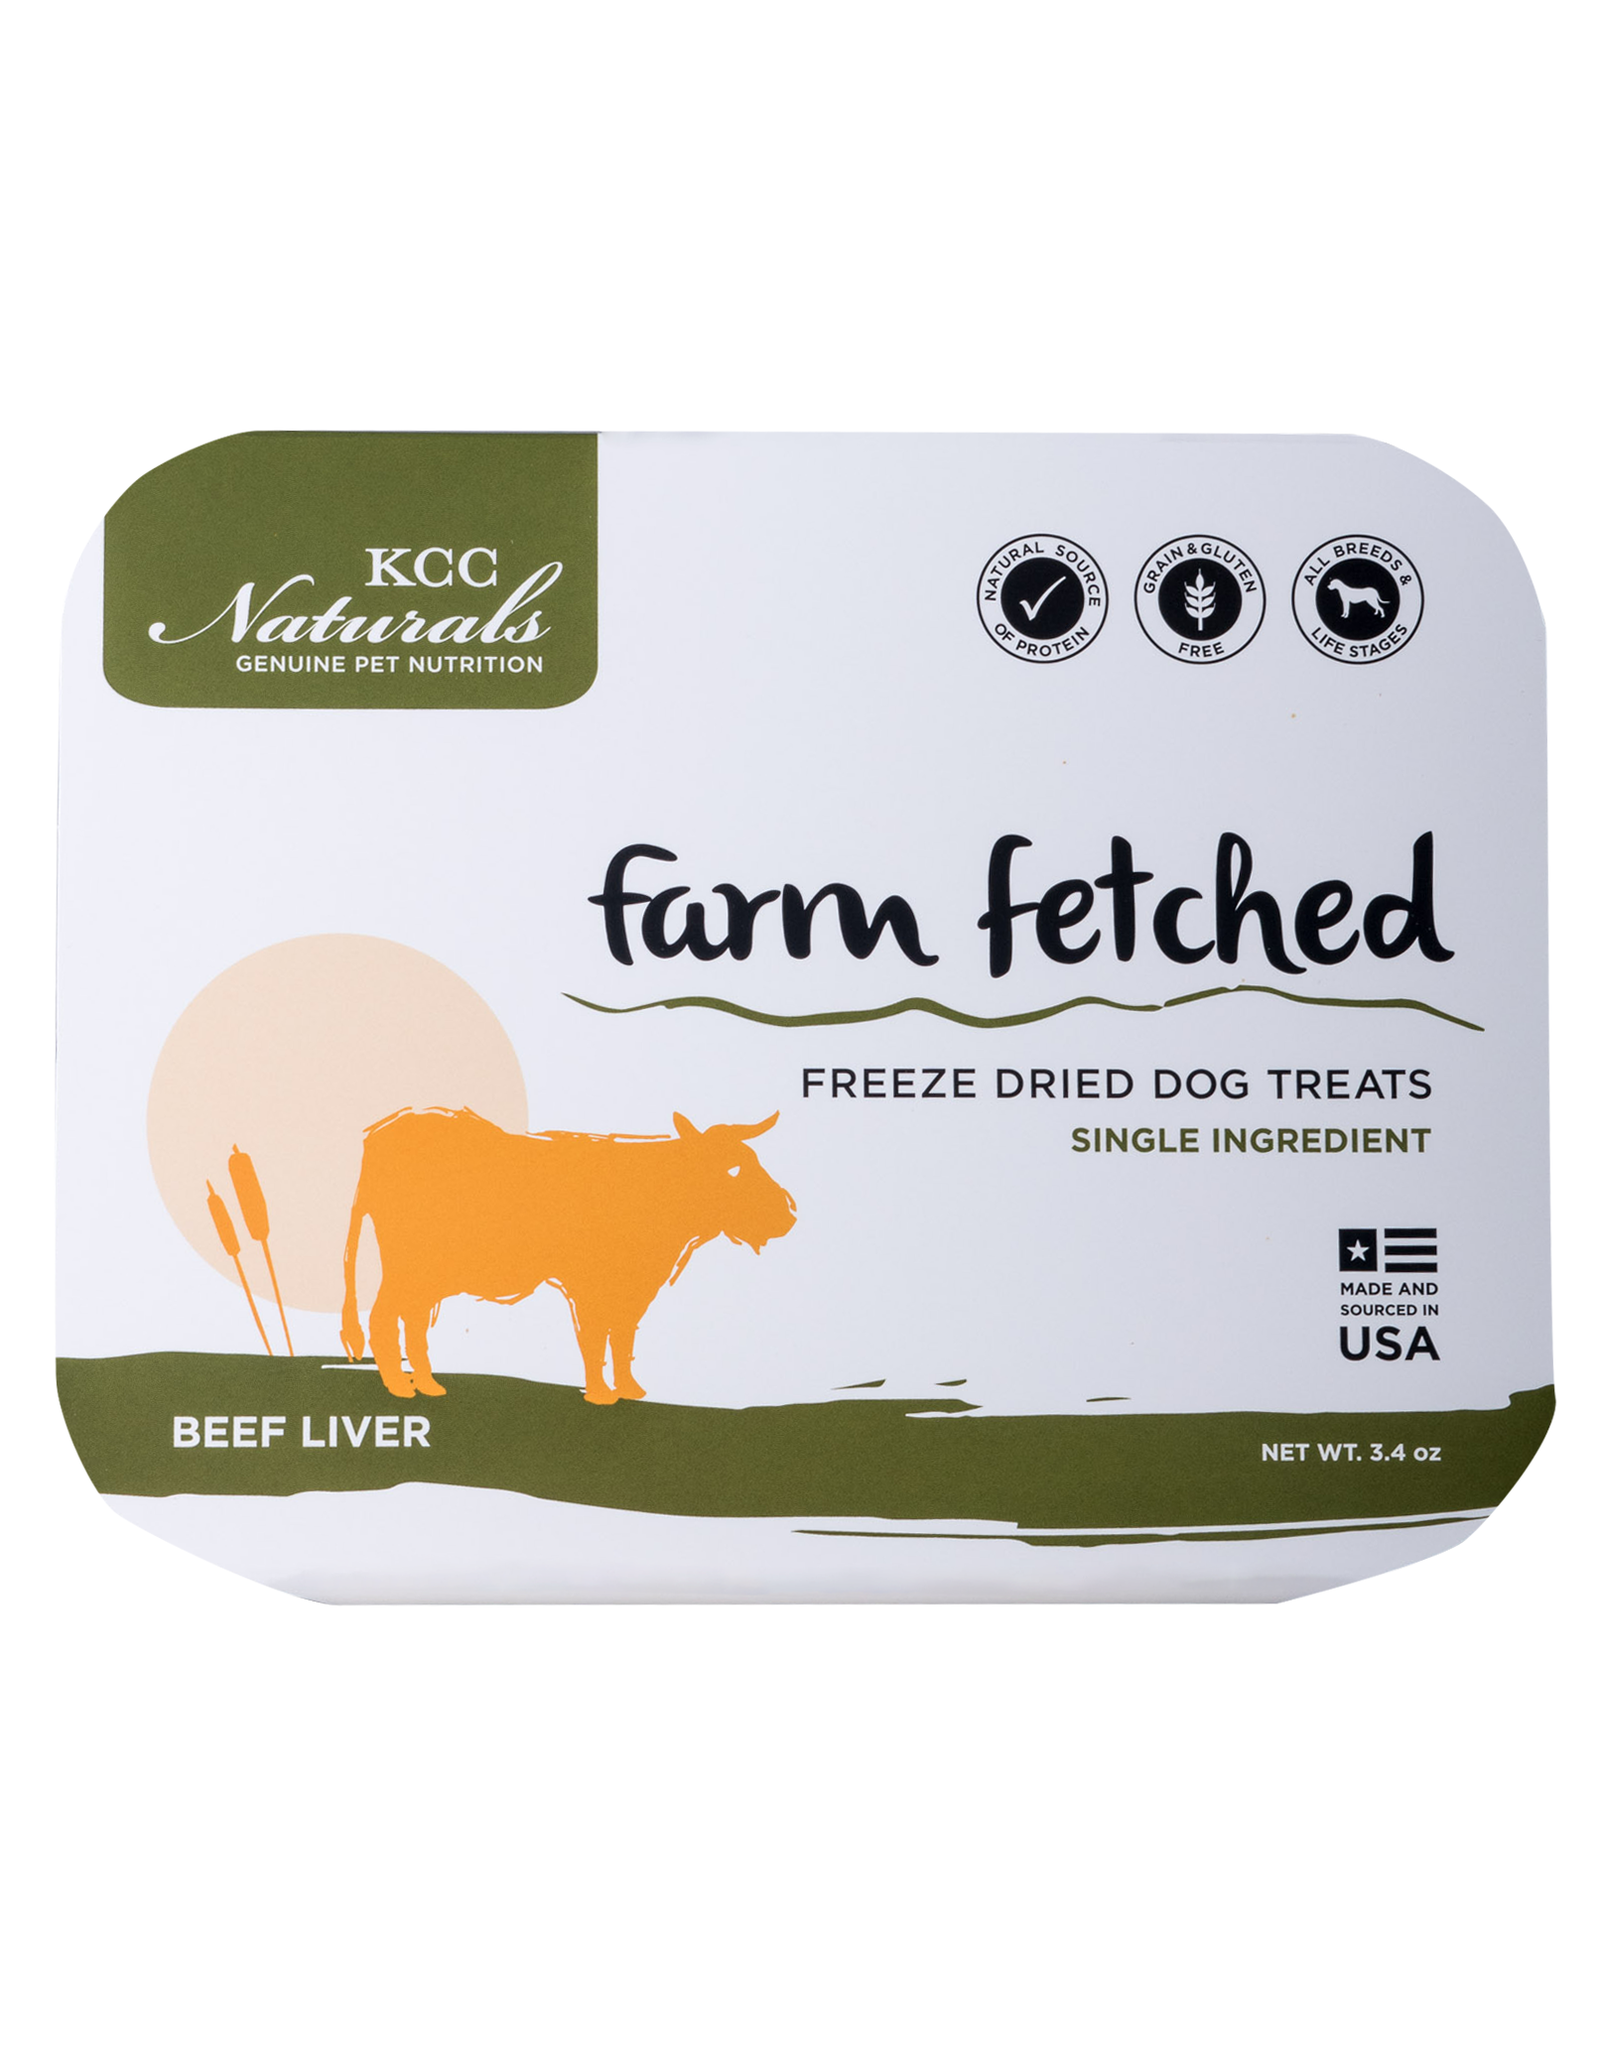 KCC KCC Naturals Farm Fetched Freeze Dried Beef Liver Dog Treat 3.4oz